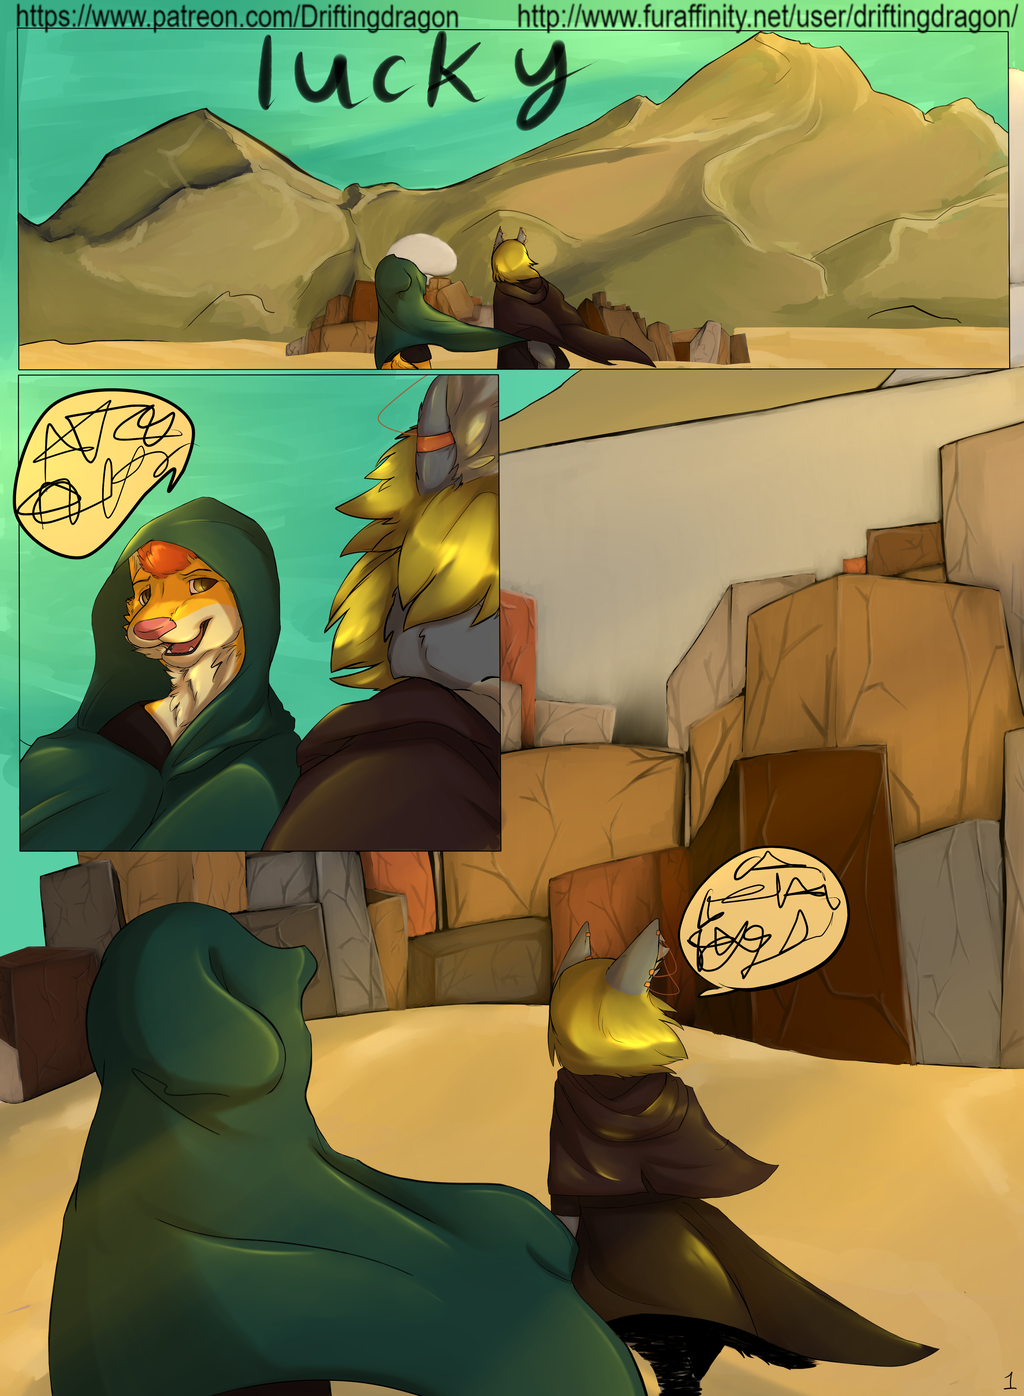 Most recent image: Lucky: Prologue P1